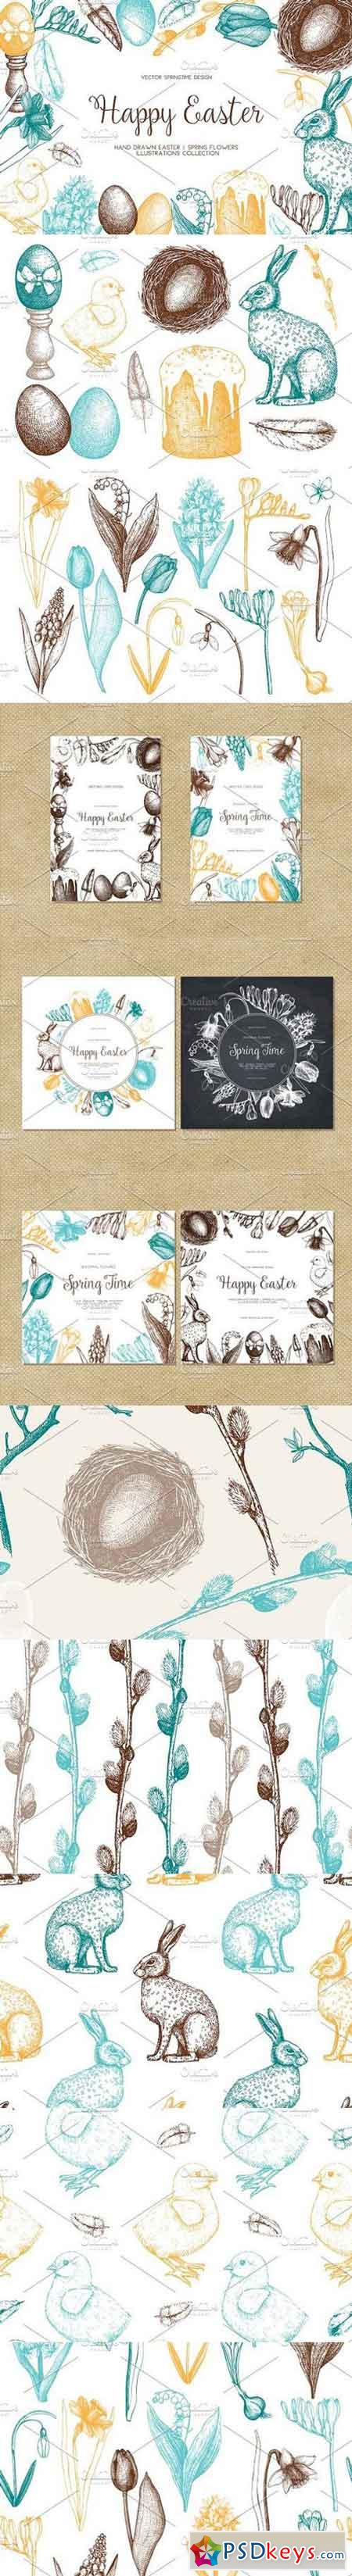 Happy Easter Day Collection 1278861